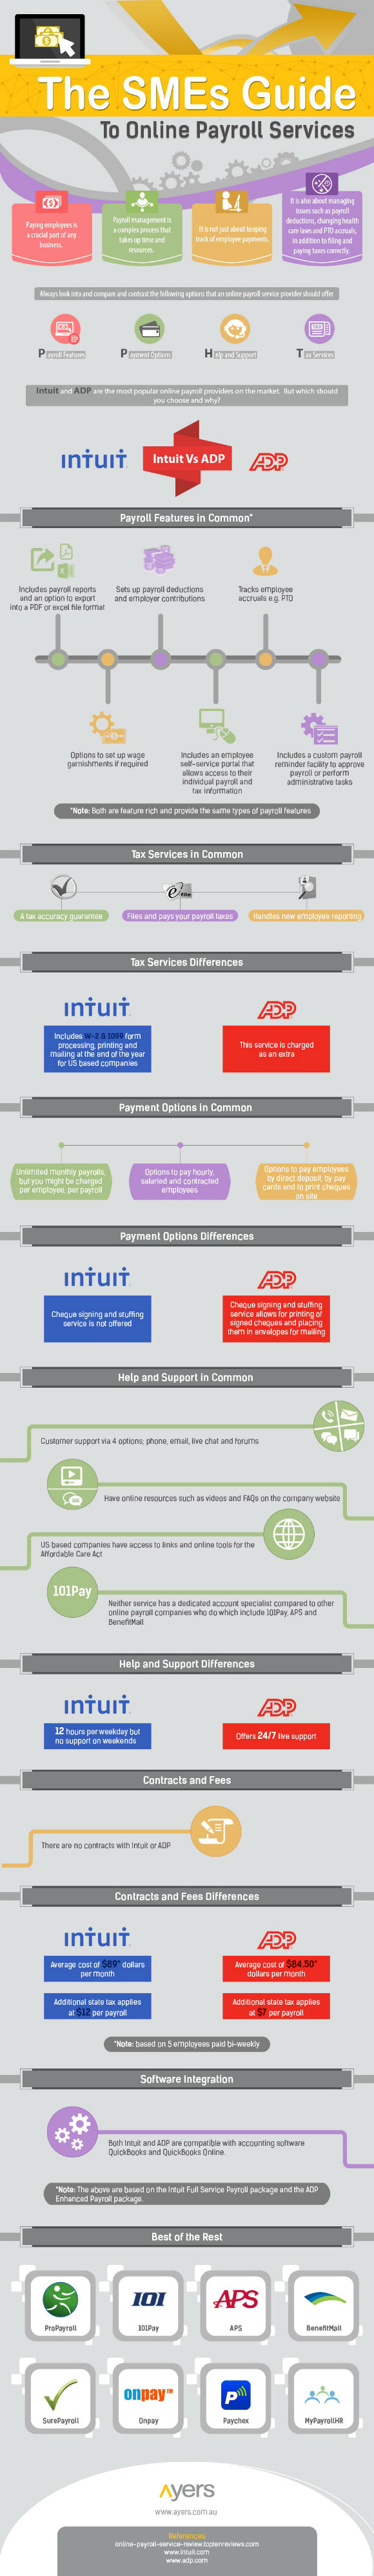 Running payroll for small business: the ultimate guide | primepay.